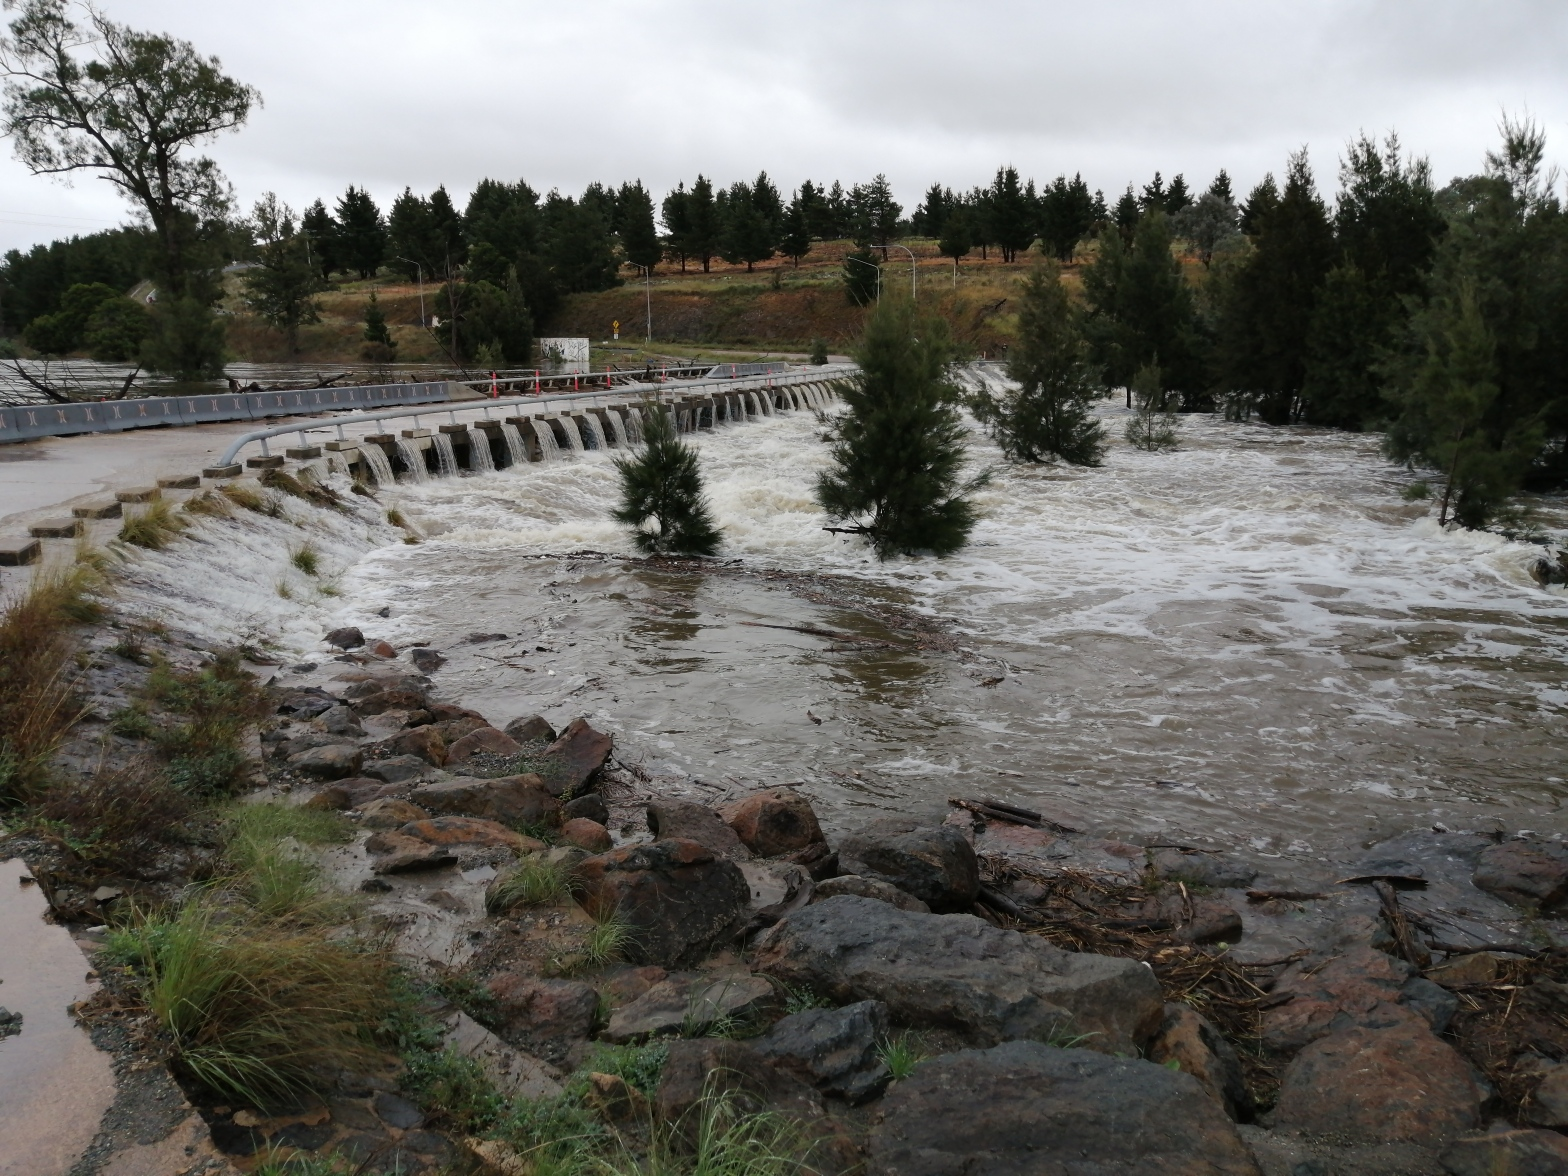 Flood water, Coppins Crossing, Molonglo River, Molonglo Valley, 24 March 2021